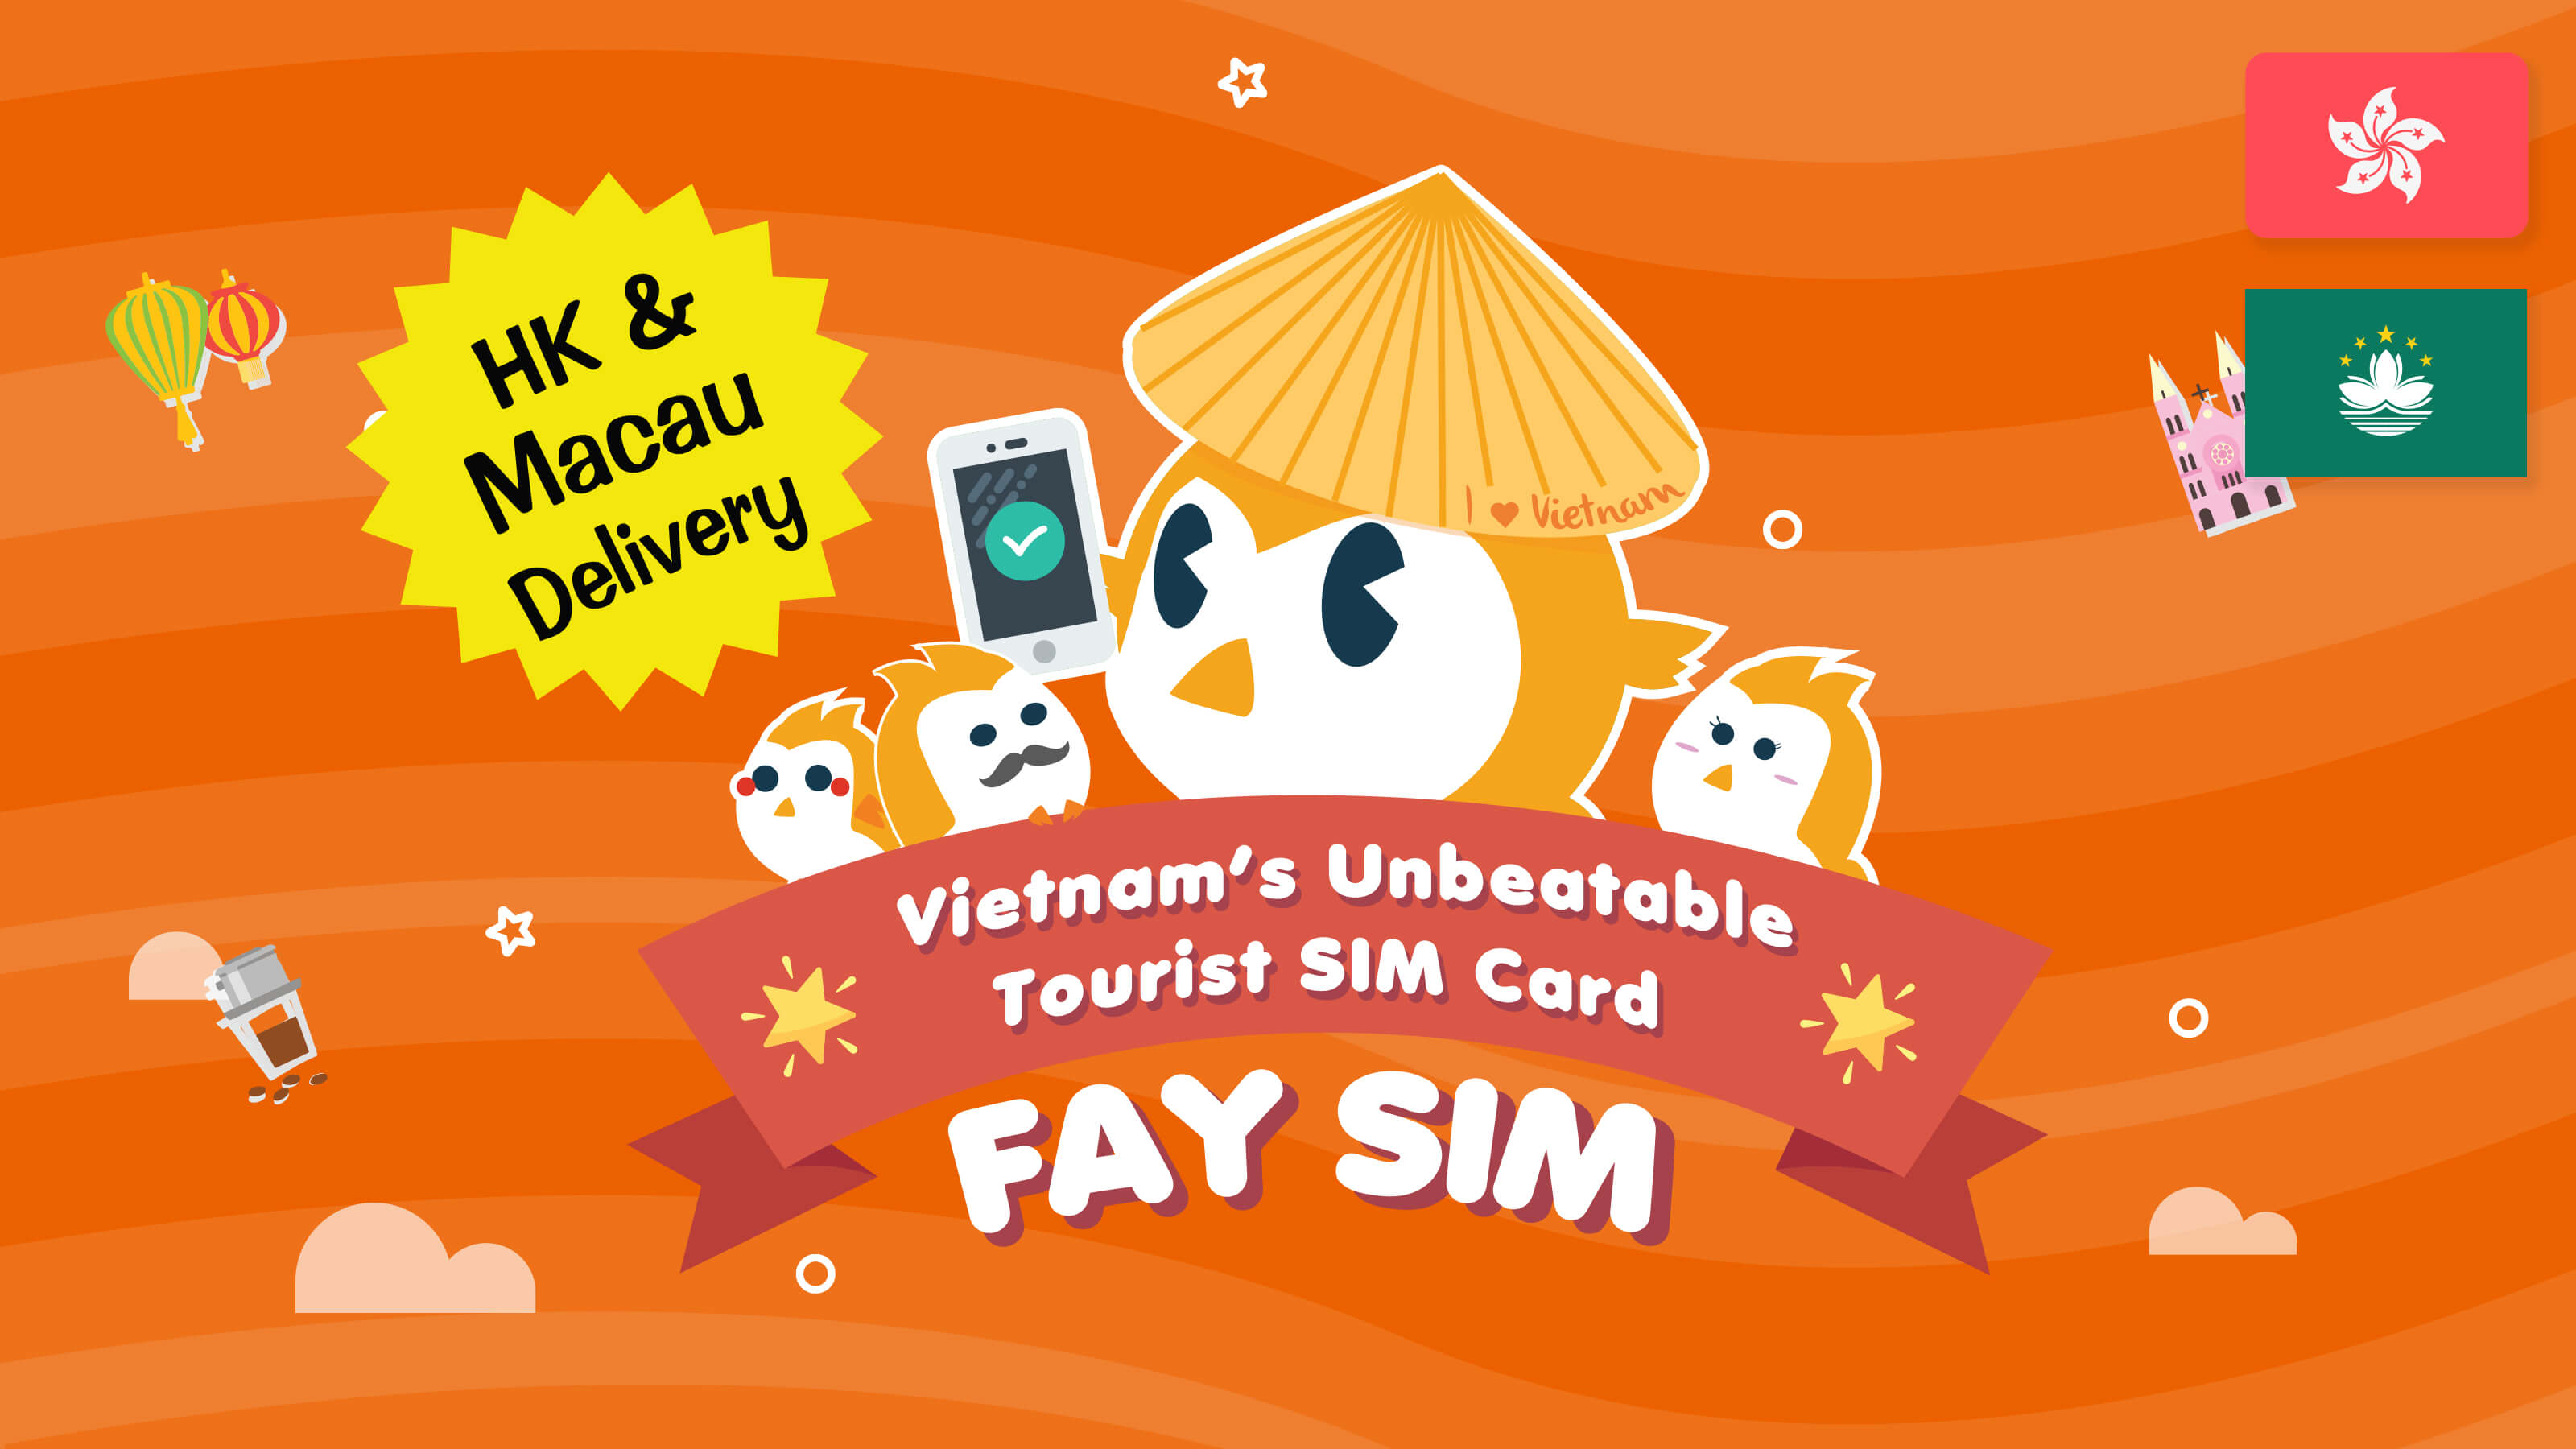 FAY SIM (HK/MO Delivery & HK Pick up)